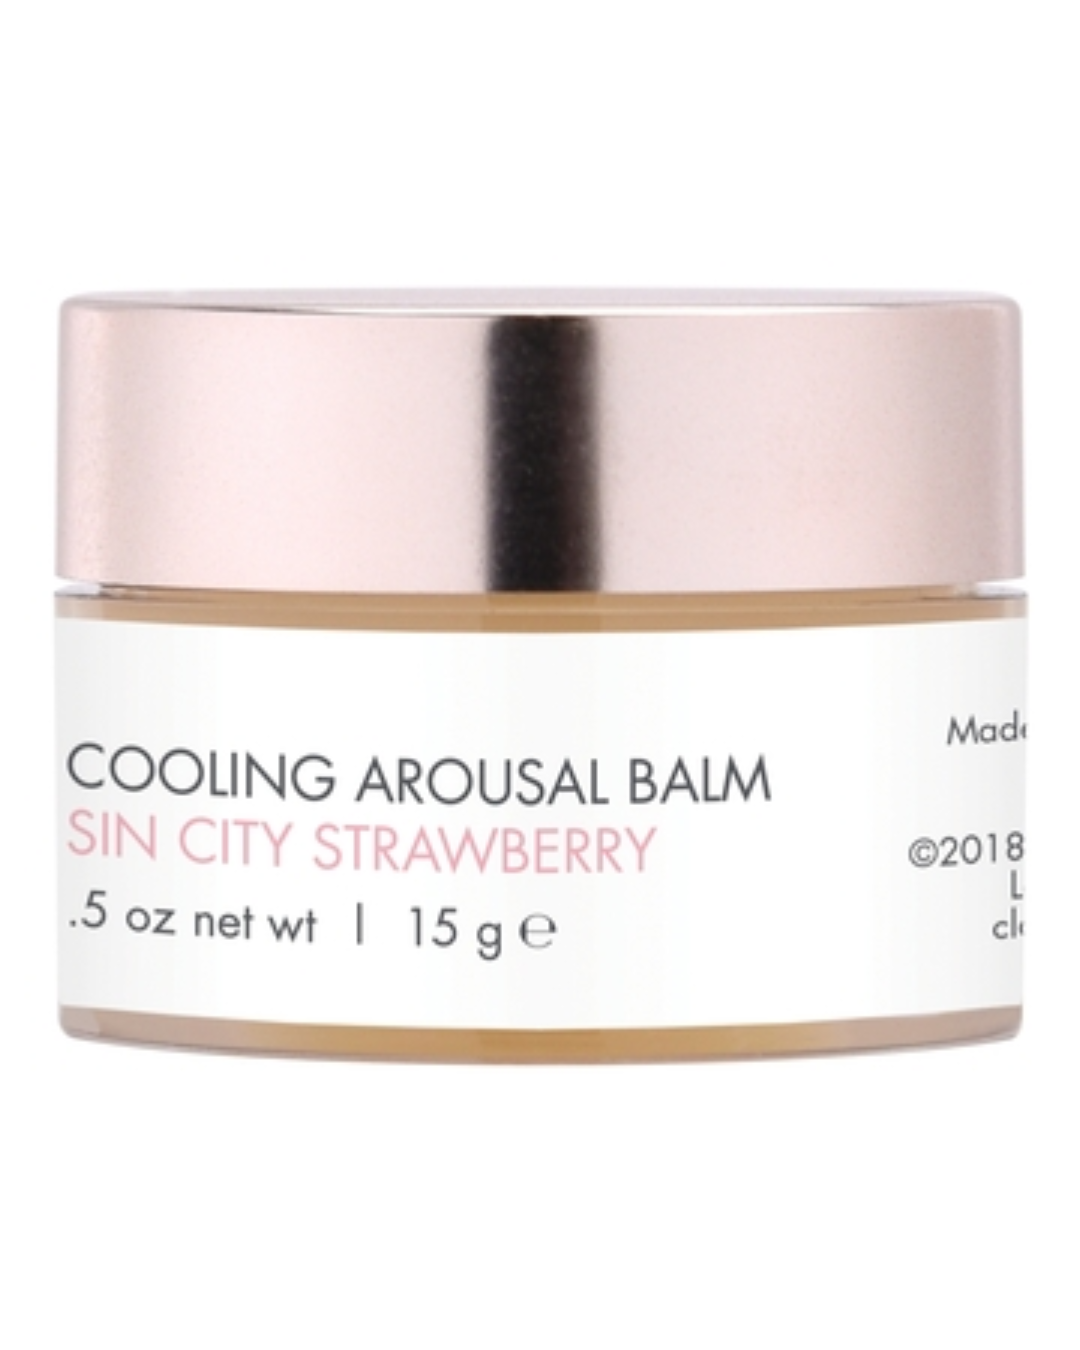 CG Nip Nibs Cooling Arousal Balm .5 oz - Sin City Strawberry bottle back